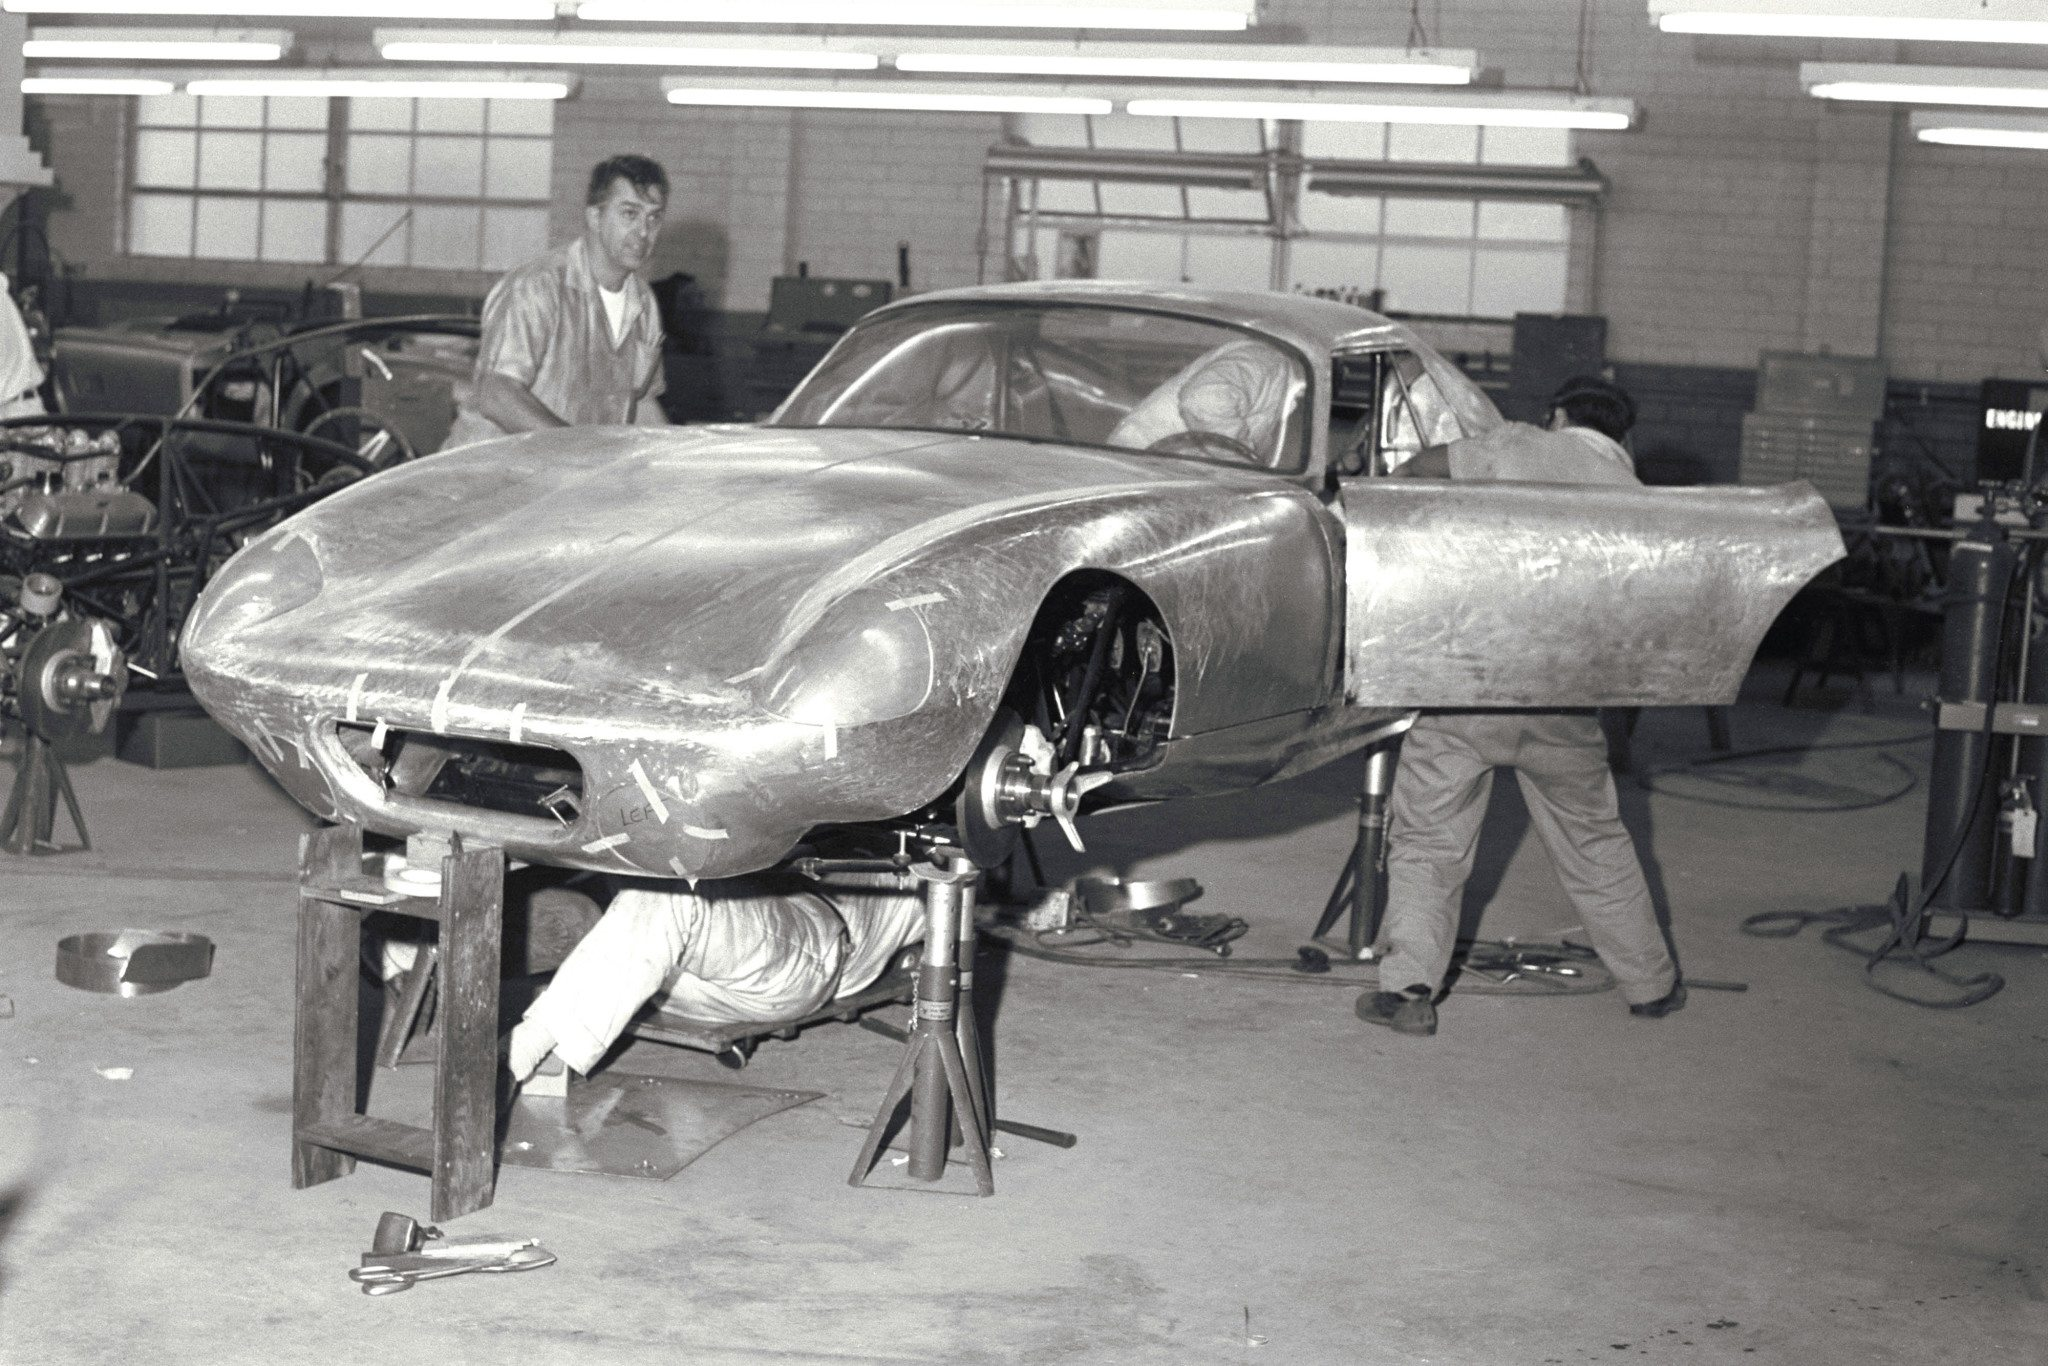 Daytona Under Construction at Shelby American